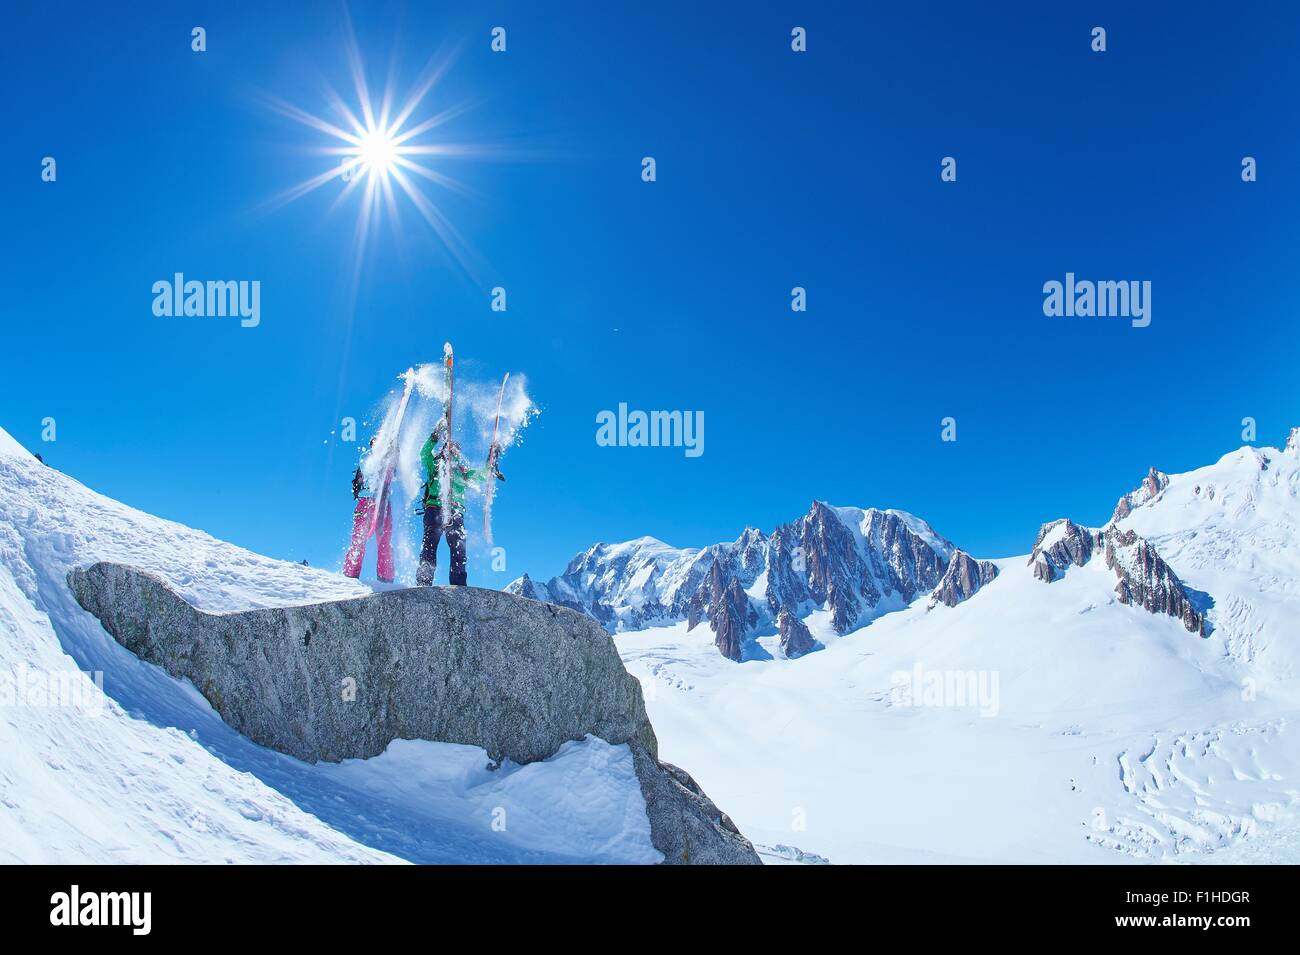 Male and female skiers shaking snow from skis on Mont Blanc massif, Graian Alps, France - Stock Image